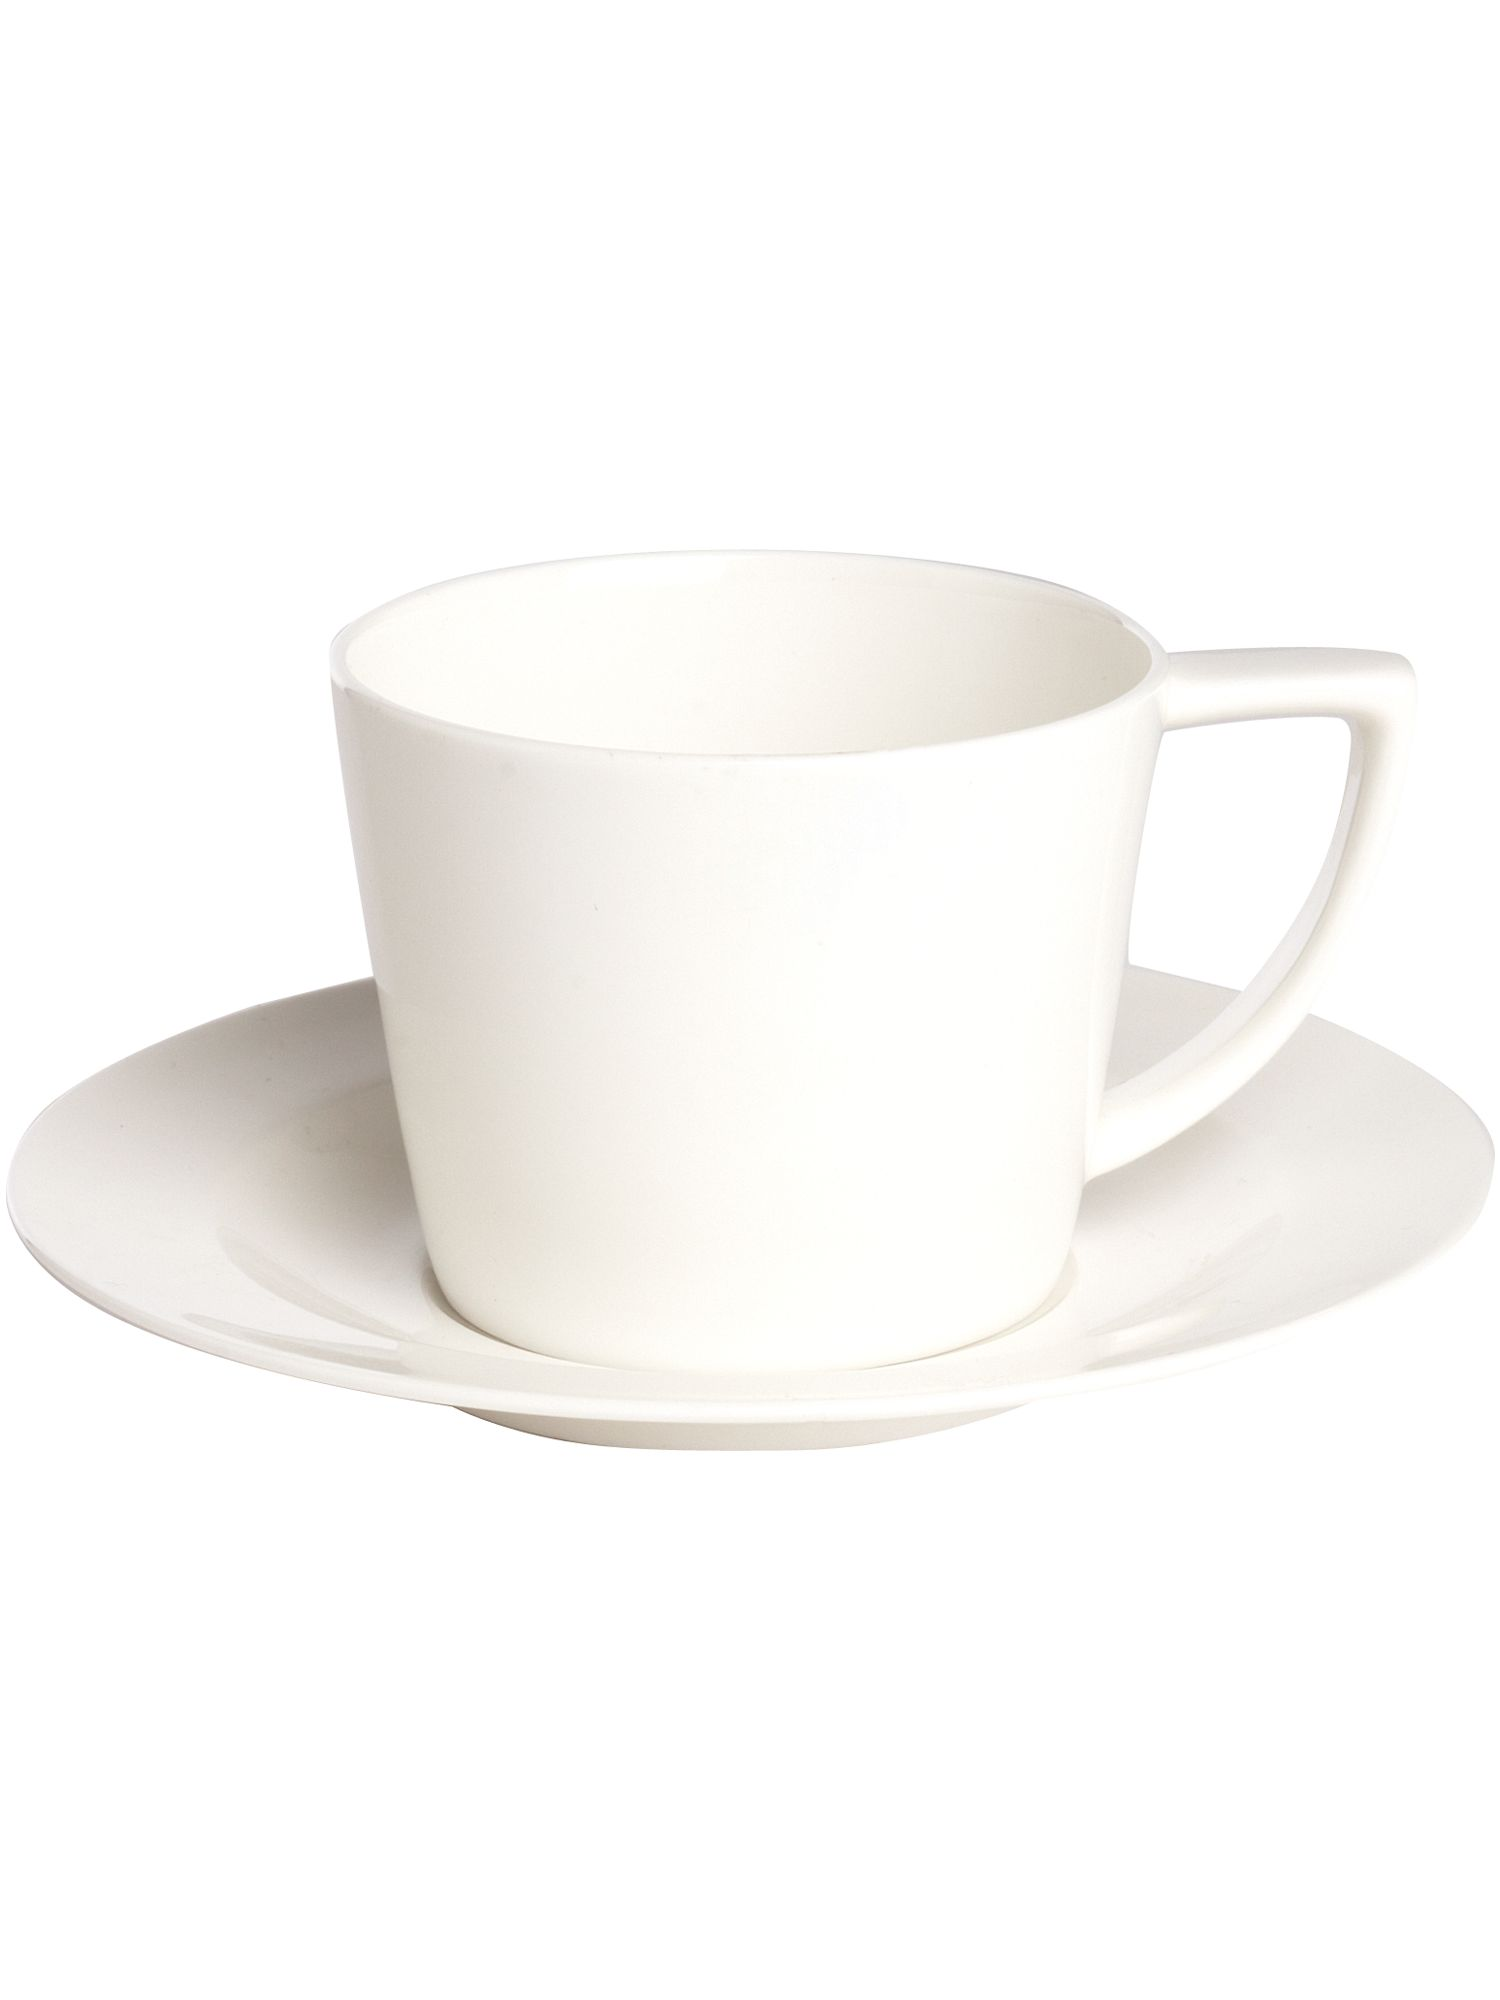 Eternal tea cup and saucer